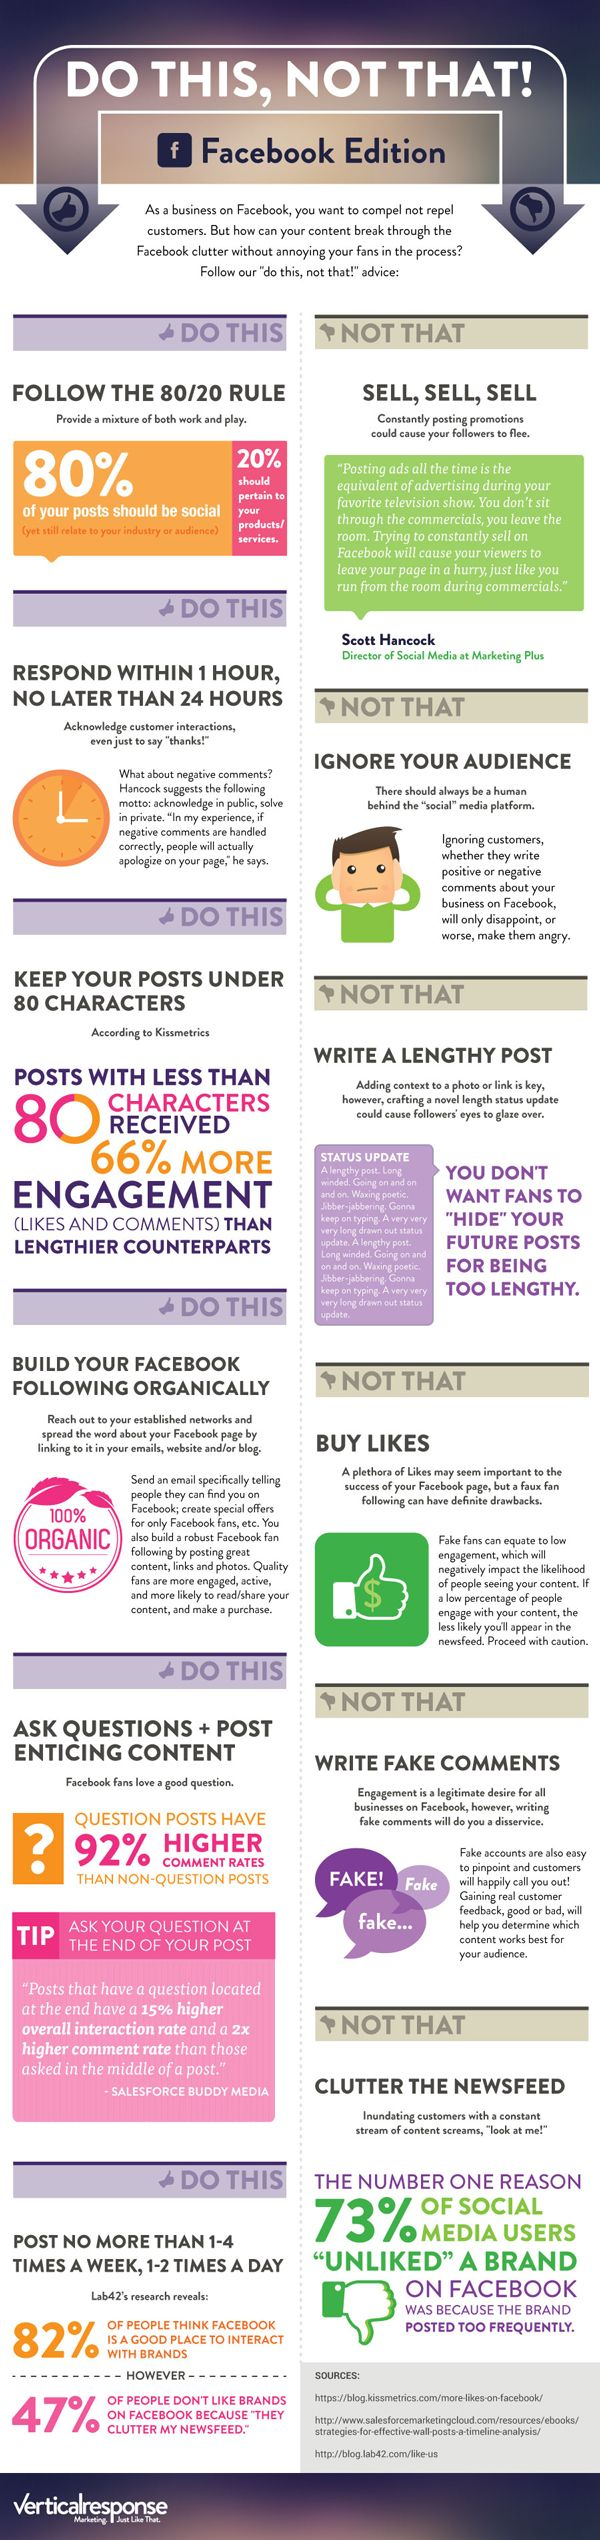 Facebook: Do this not that. Diese Infografik bringt's auf den Punkt!